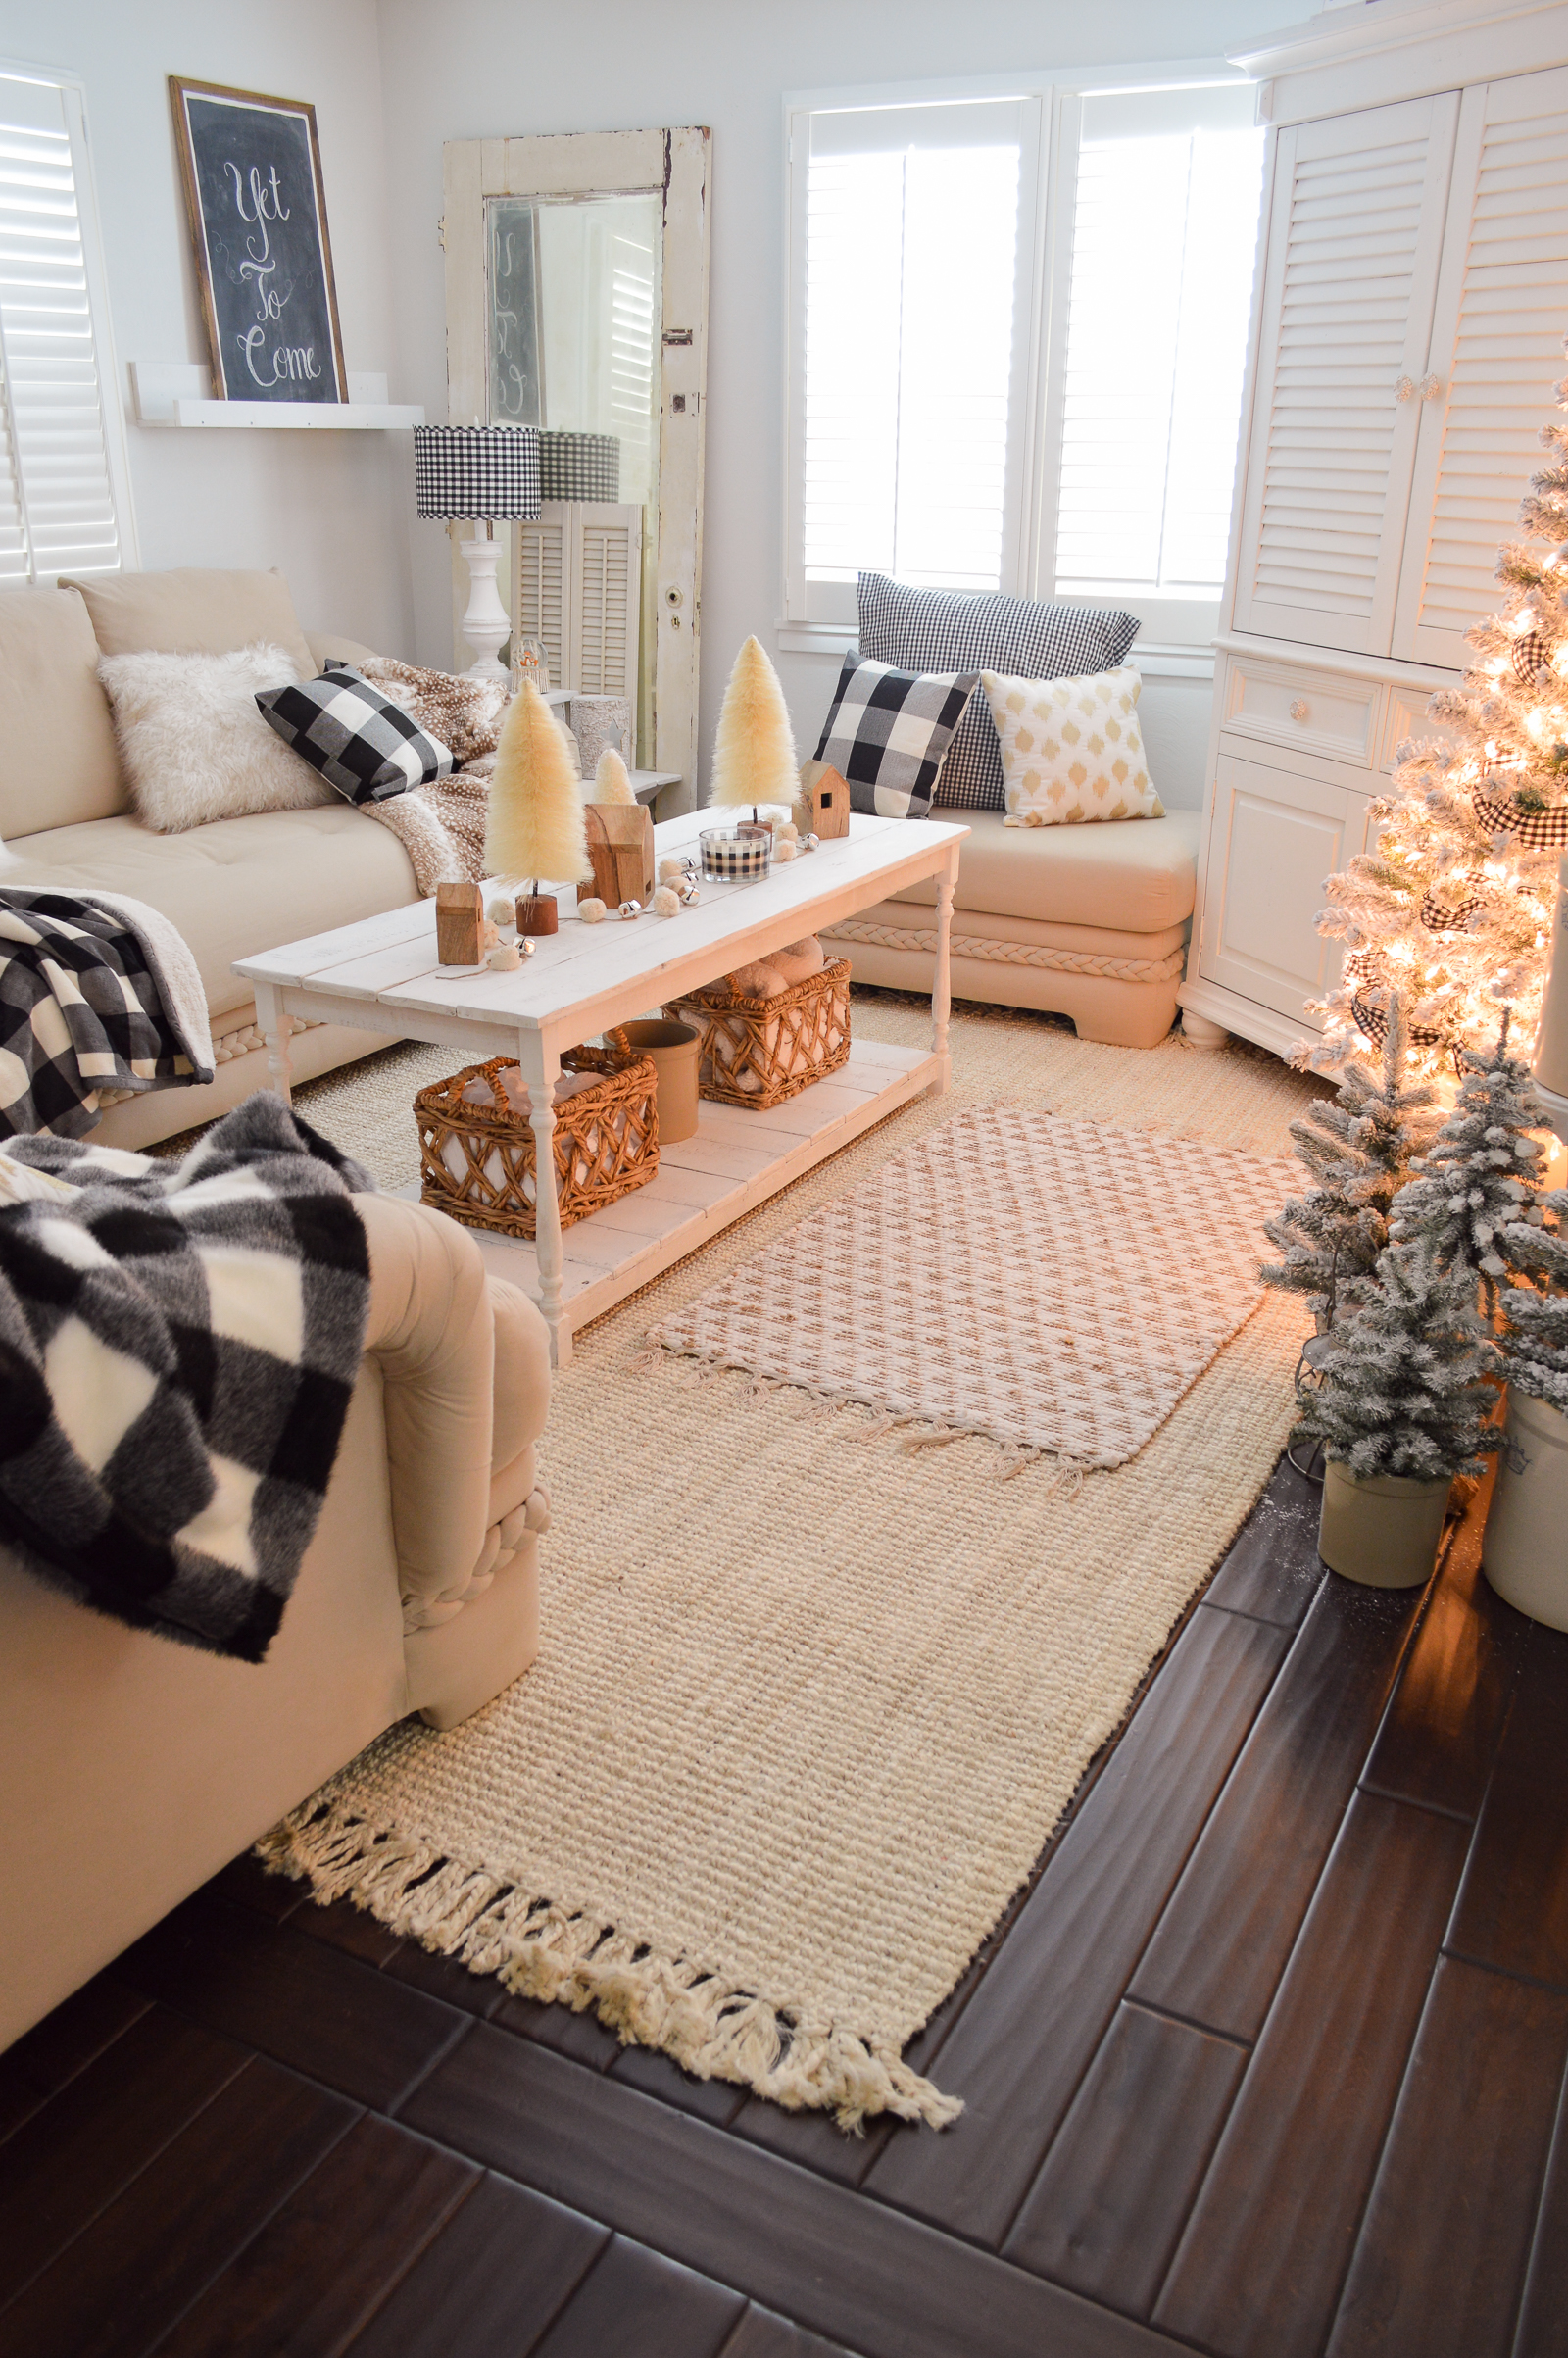 Cozy Cottage Winter Living Room Decorating Ideas - Fox Hollow Cottage